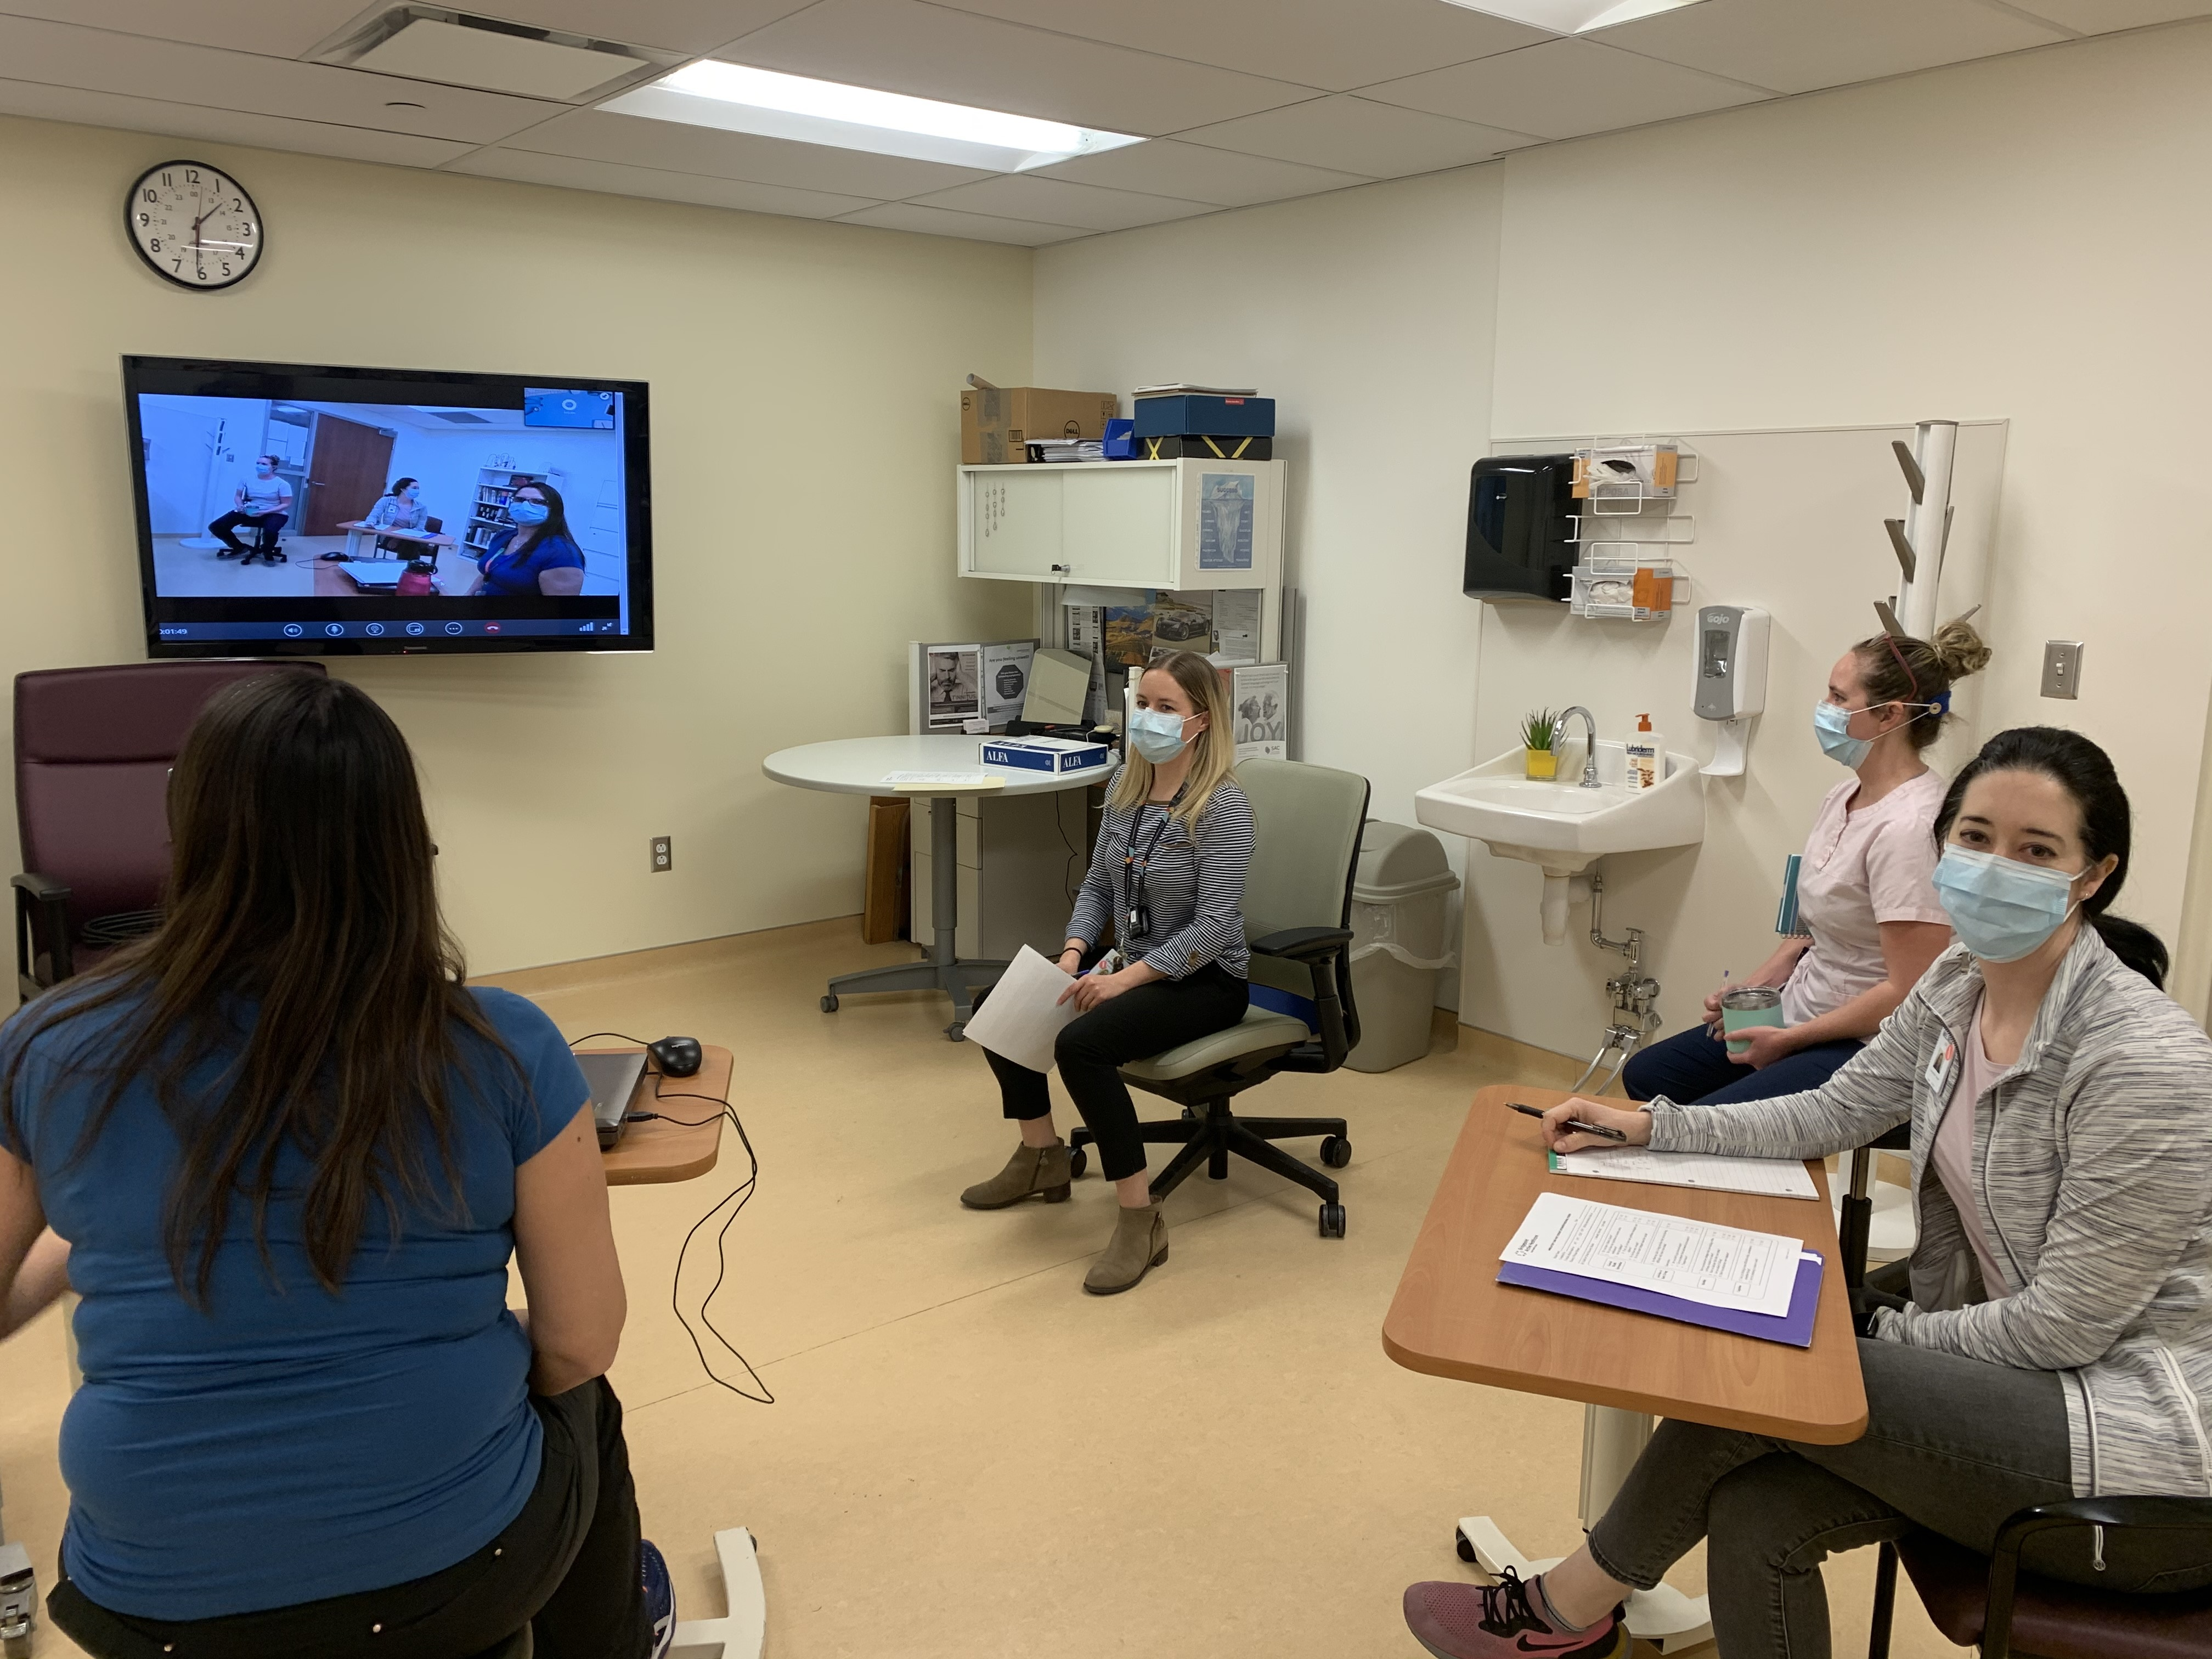 Health care workers wearing masks, sitting in a room, in front of a large television, waiting for a video conference call to start.